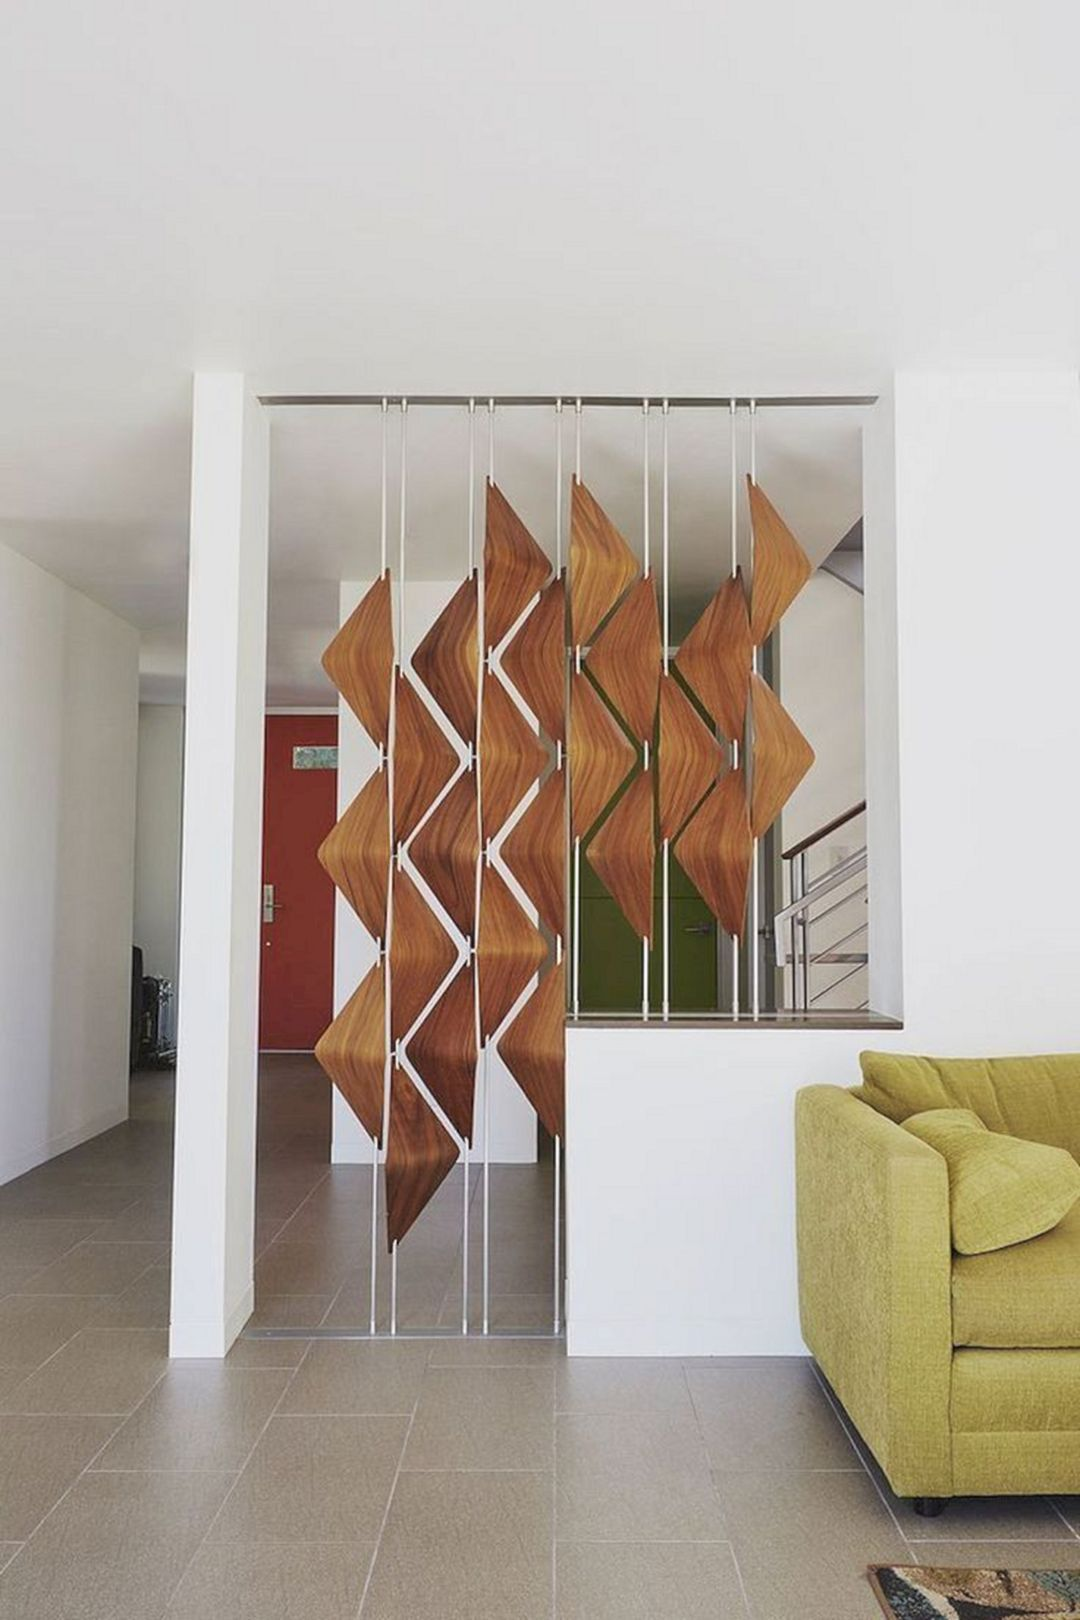 14 Wonderful Living Room Design With Divider For Small Space